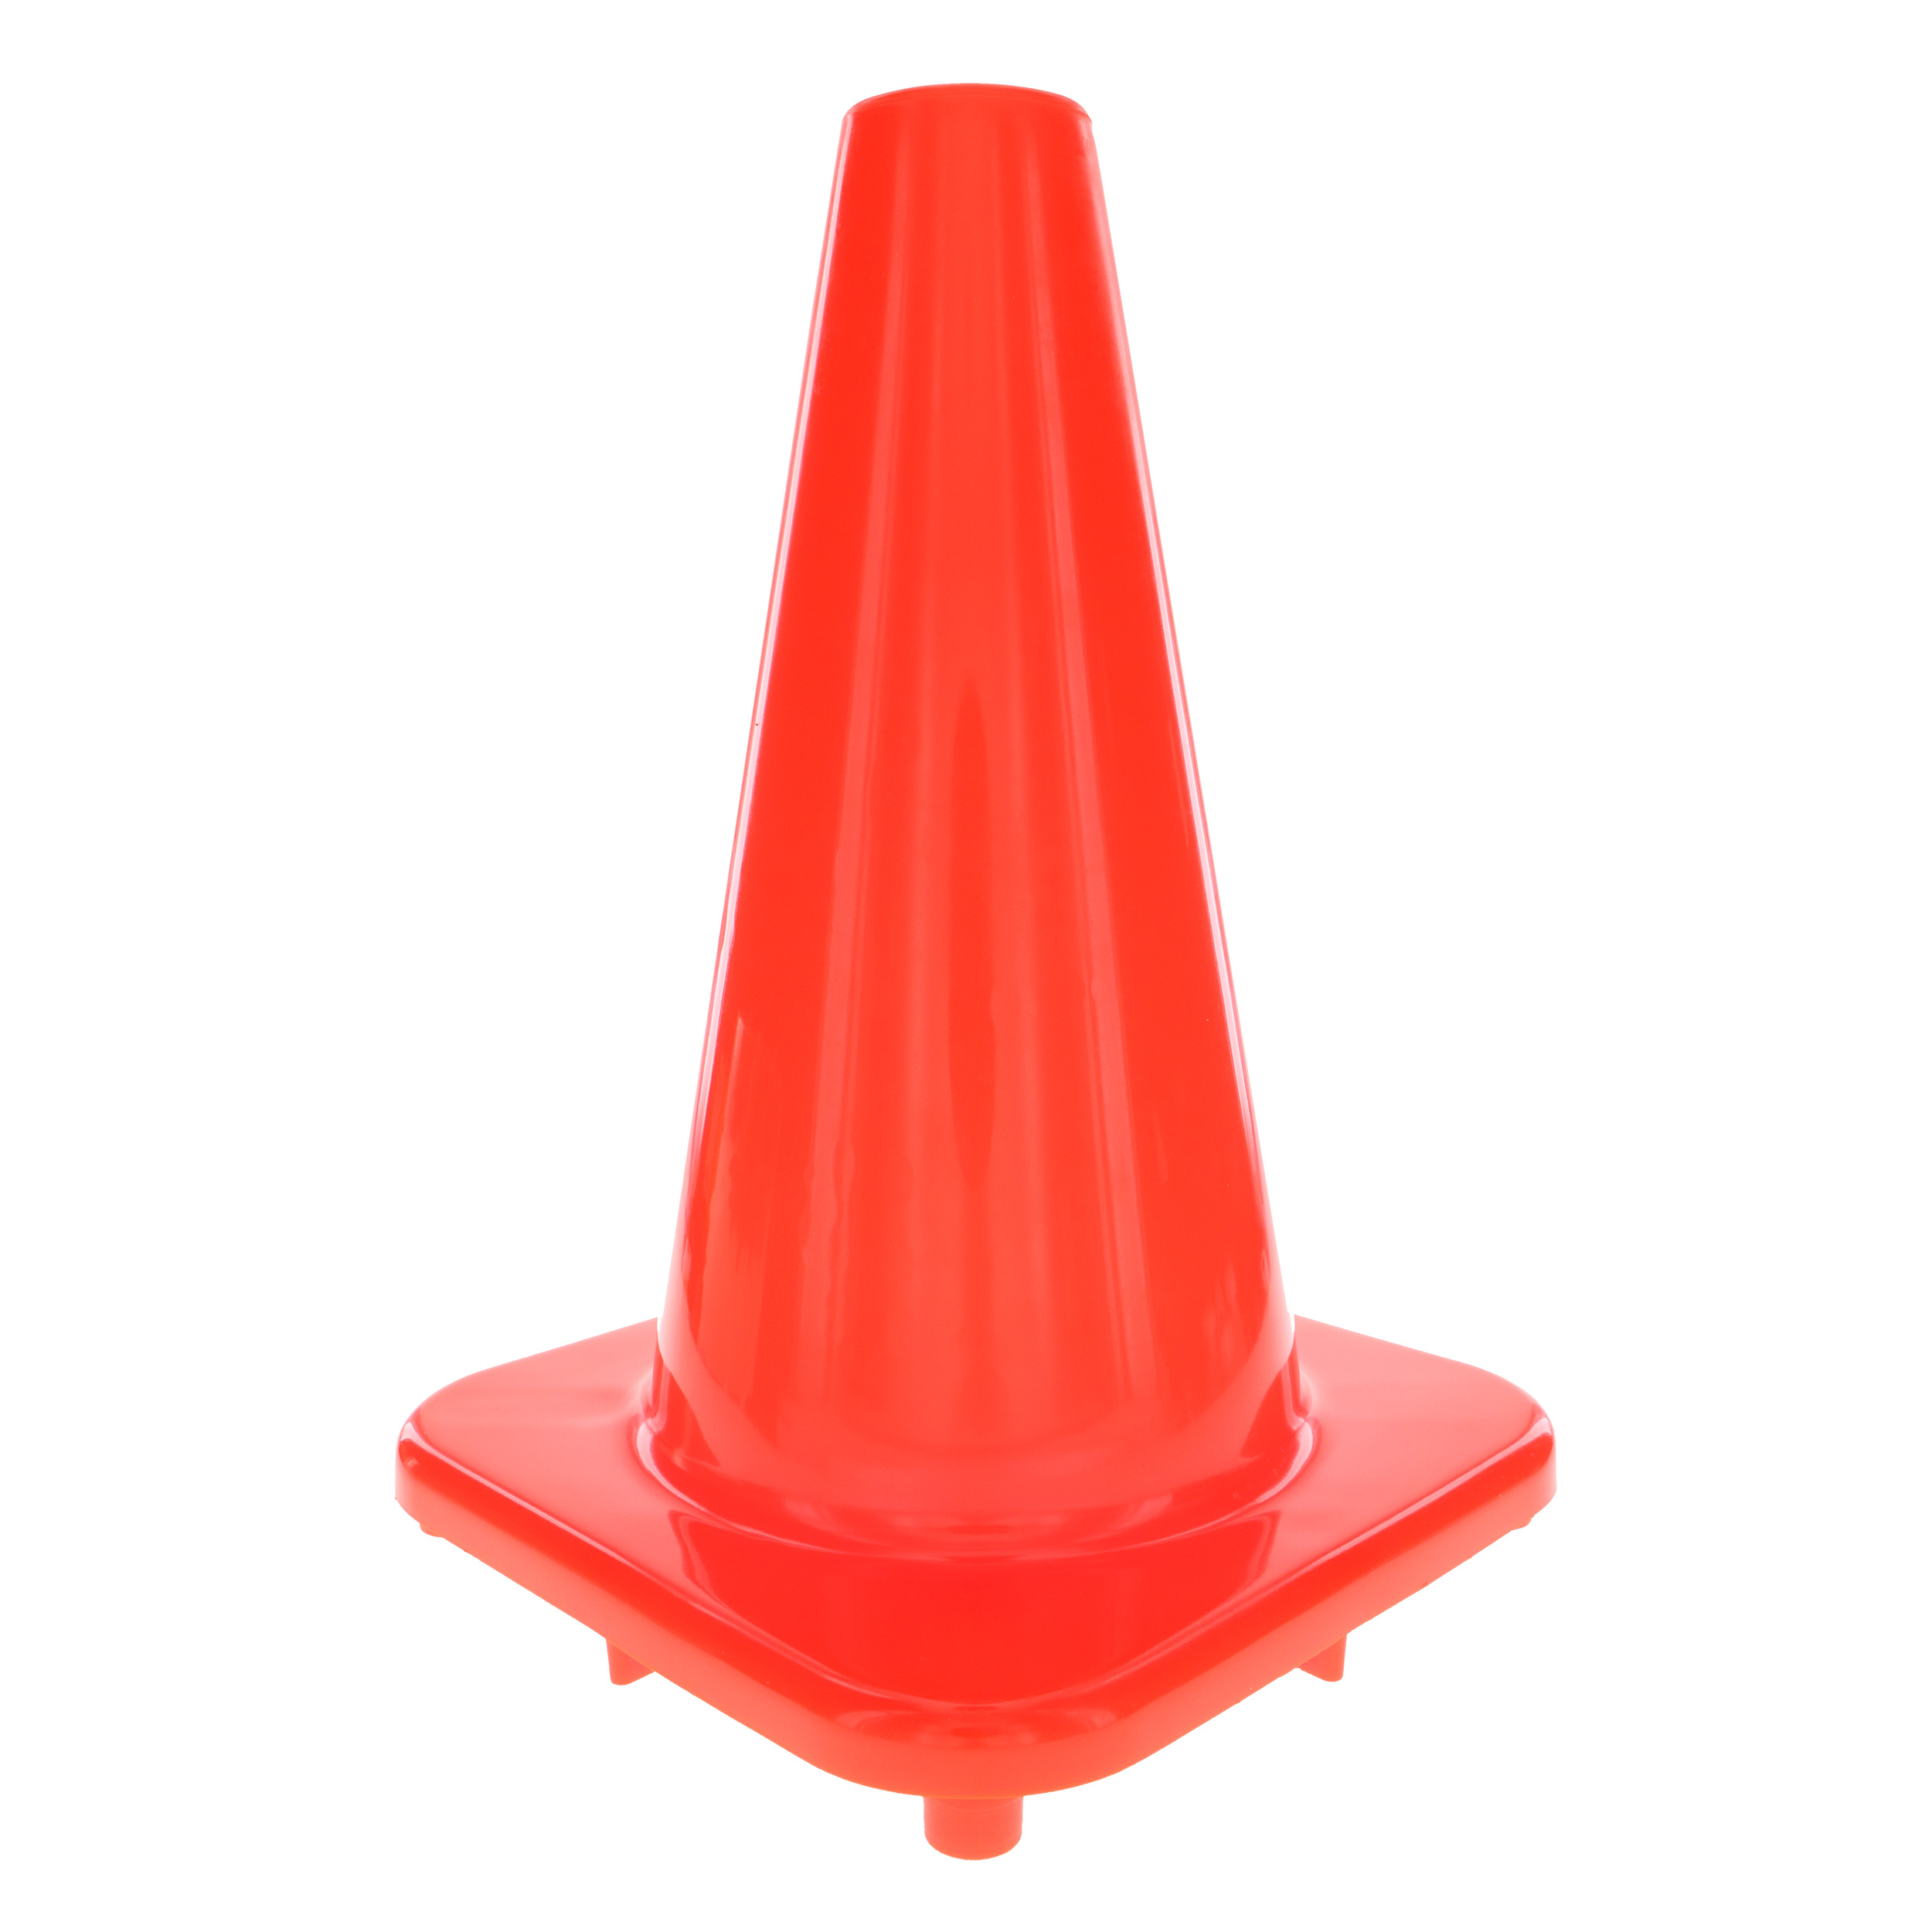 Hyper Tough Orange Synthetic Rubber Safety Cone - 12 inches, 1 Cone